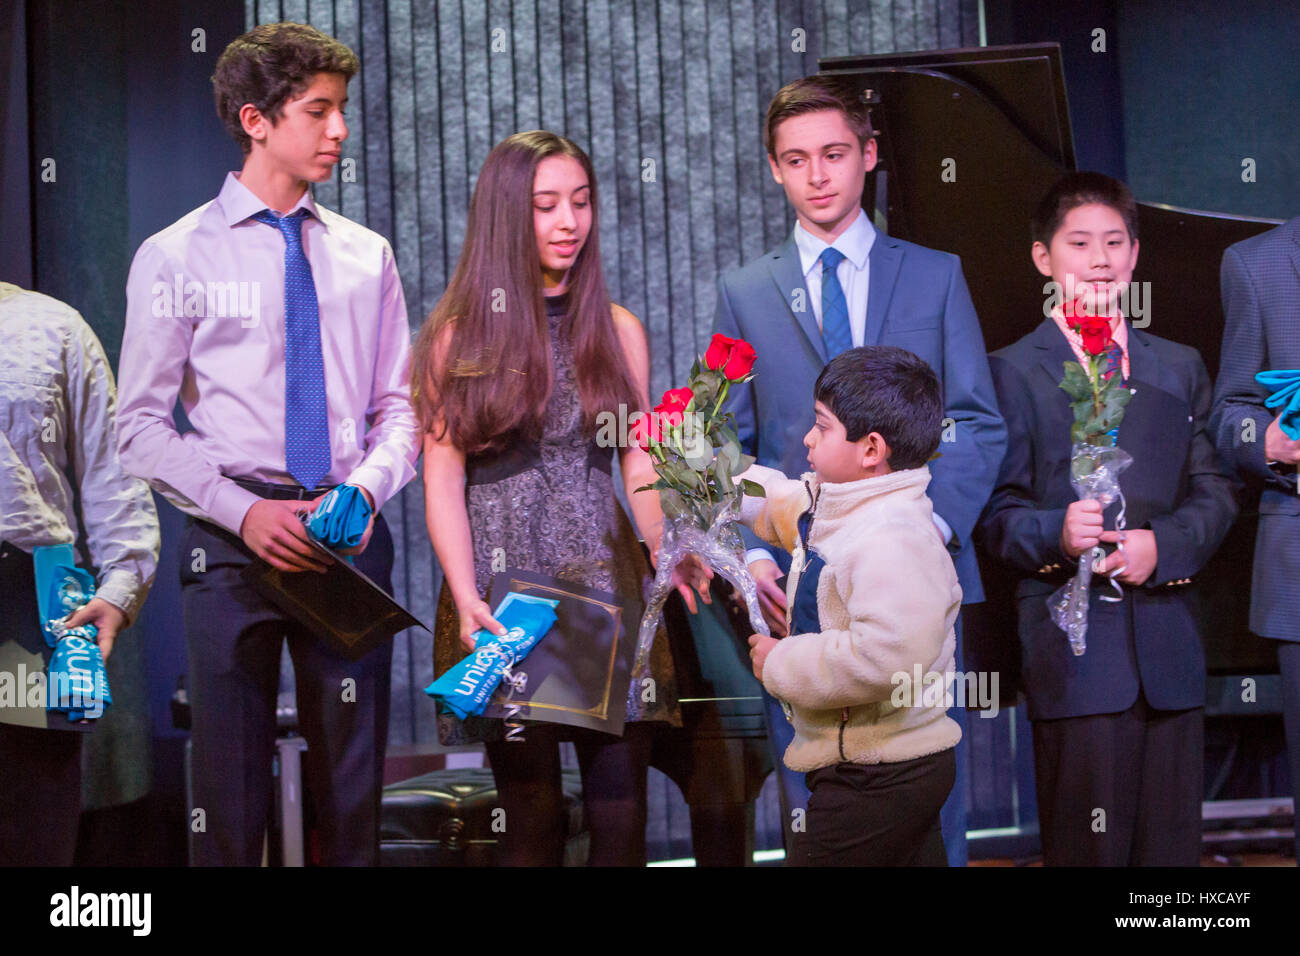 Commerce Township, Michigan - High school students are given roses for raising funds for children affected by war Stock Photo